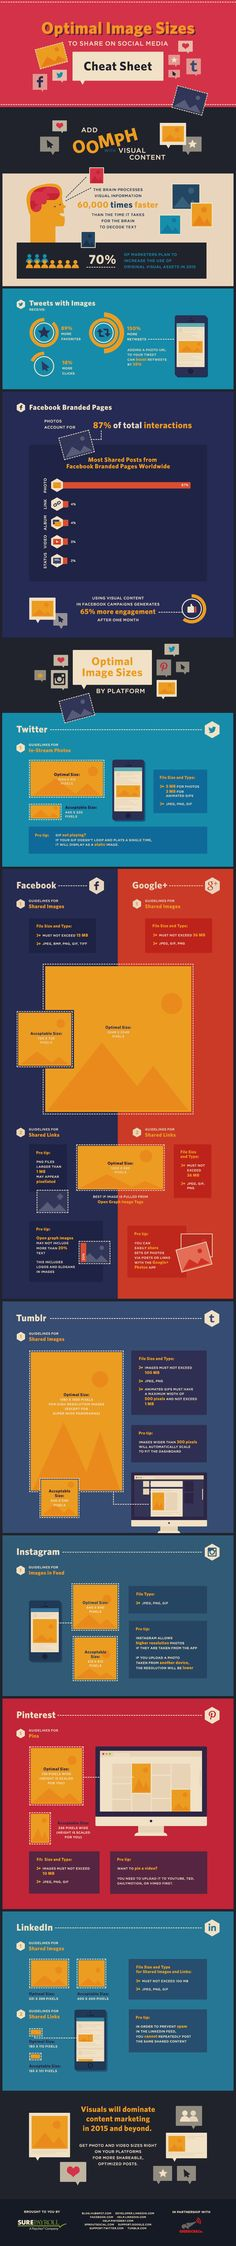 Optimal Image Sizes to Share on Social Media Cheat Sheet #infographic #SocialMedia